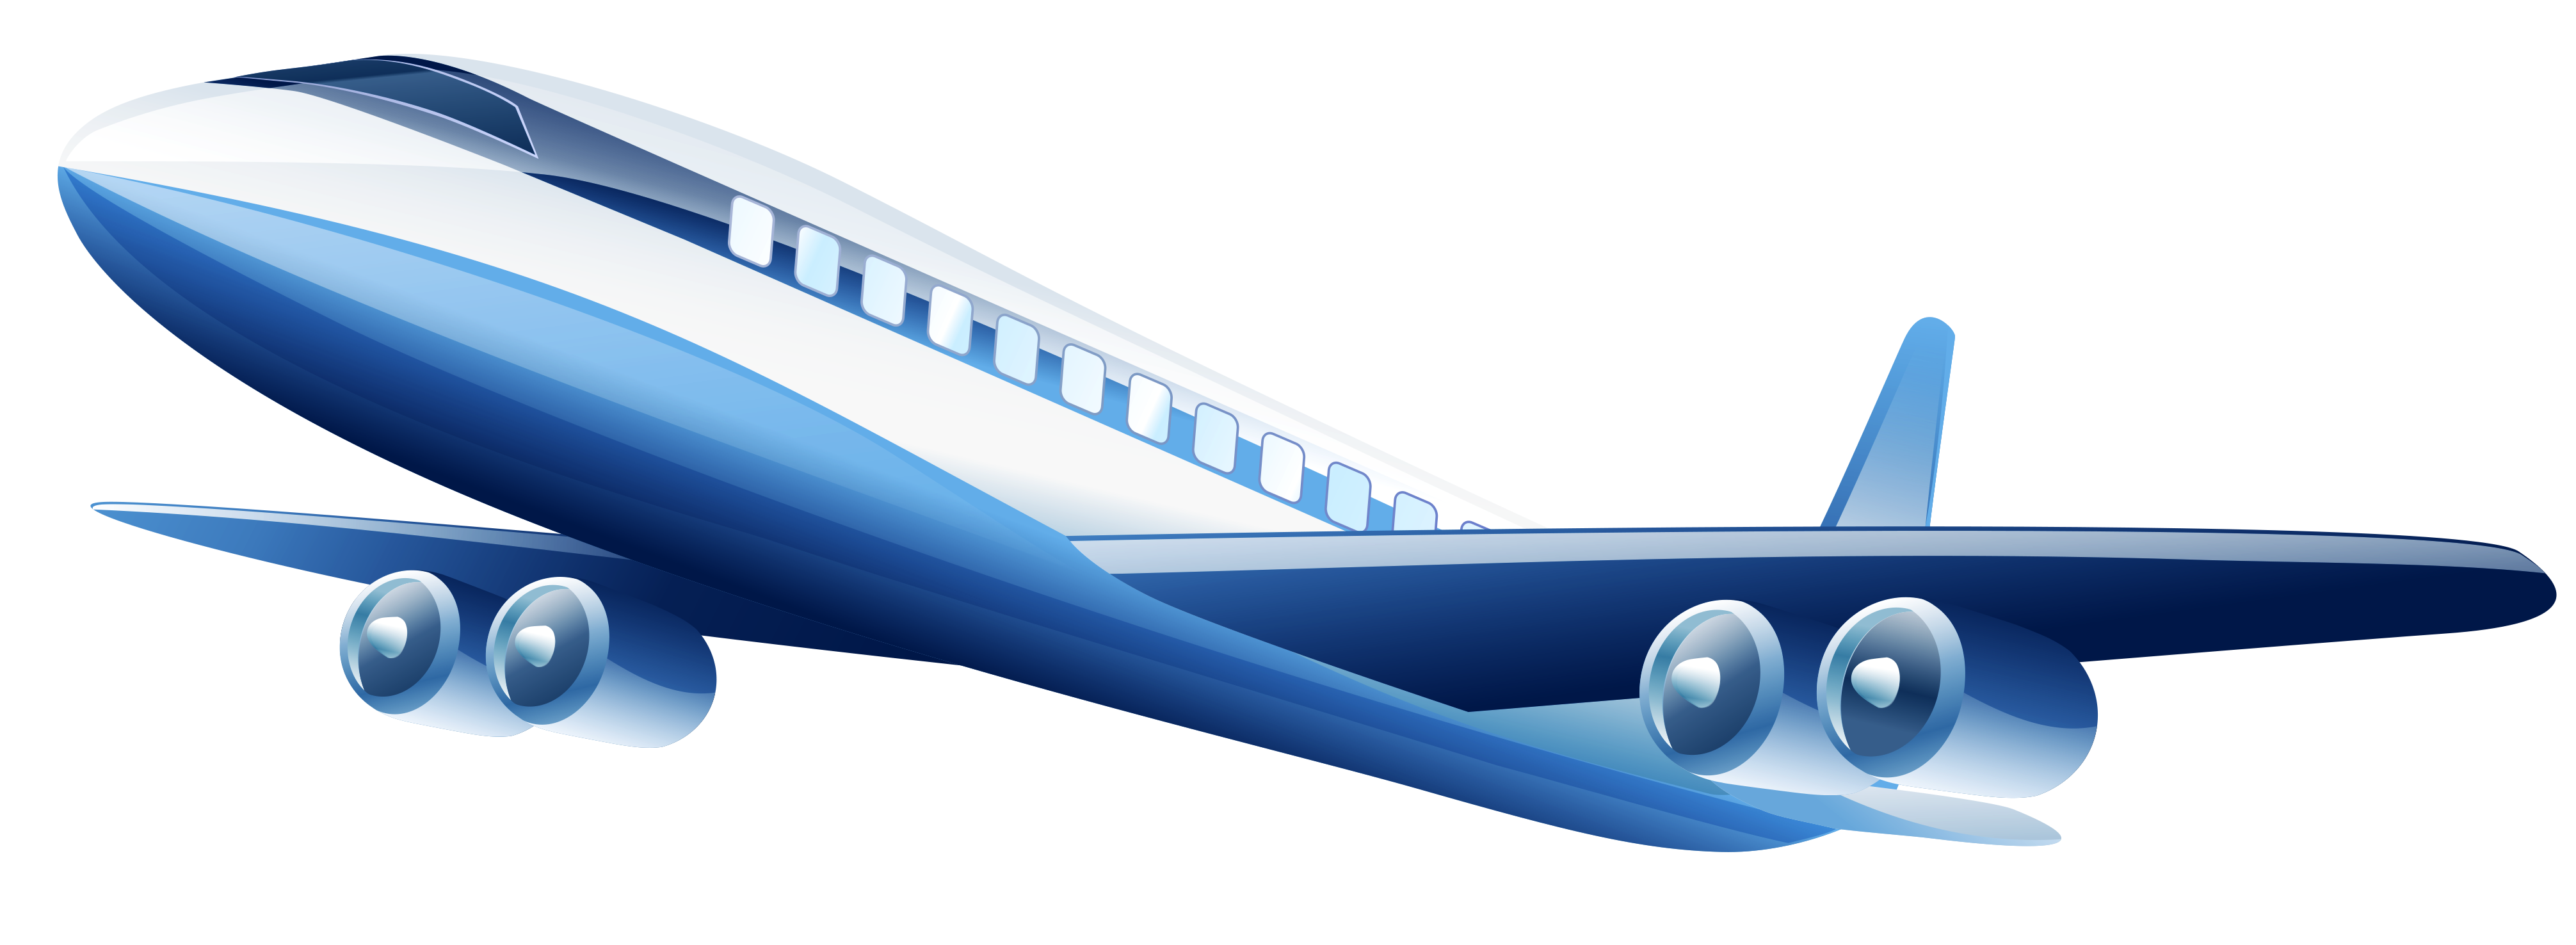 Airplane_Clipart.png?m=1433777009.